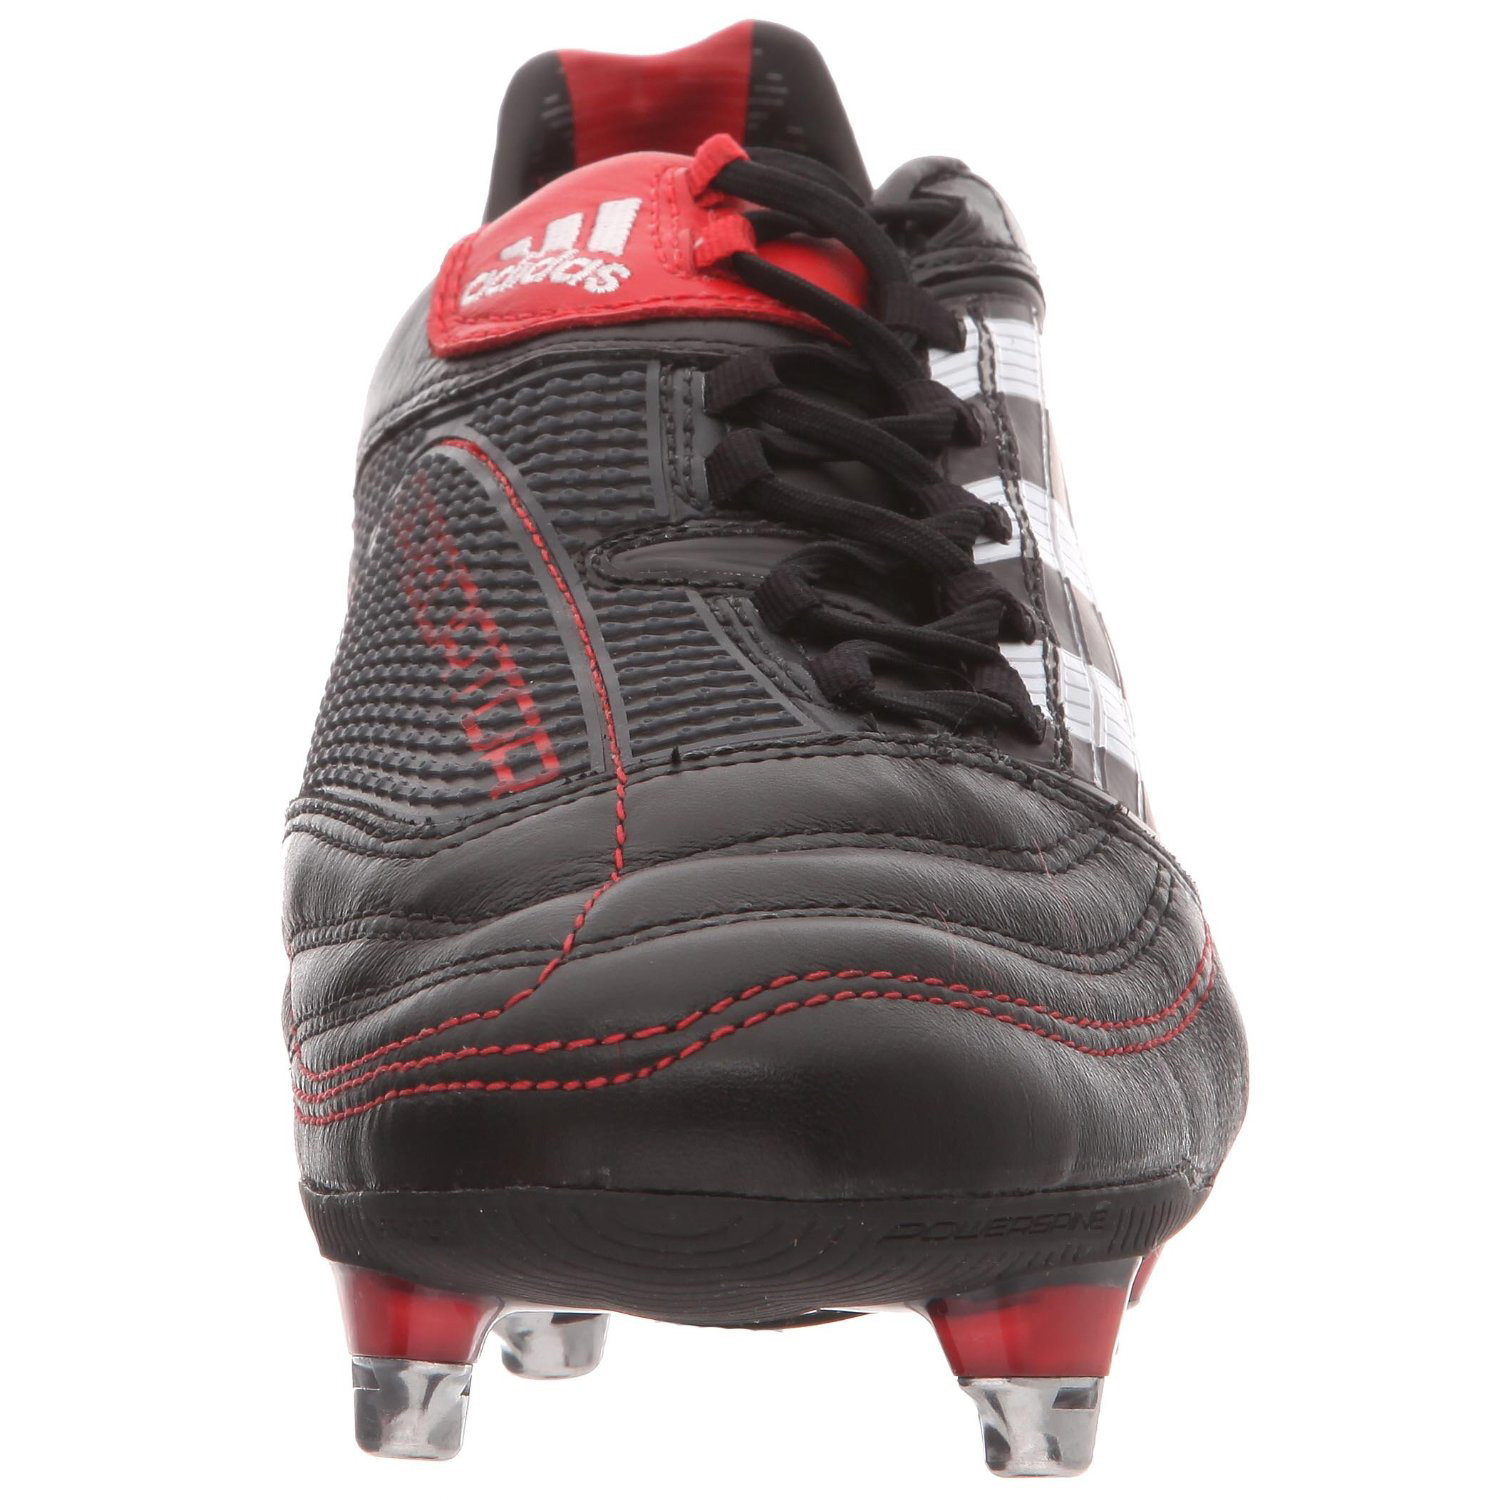 ... best price adidas performance junior x predator x sg j col football  boots g14798 rrp . a4a9a5712b343